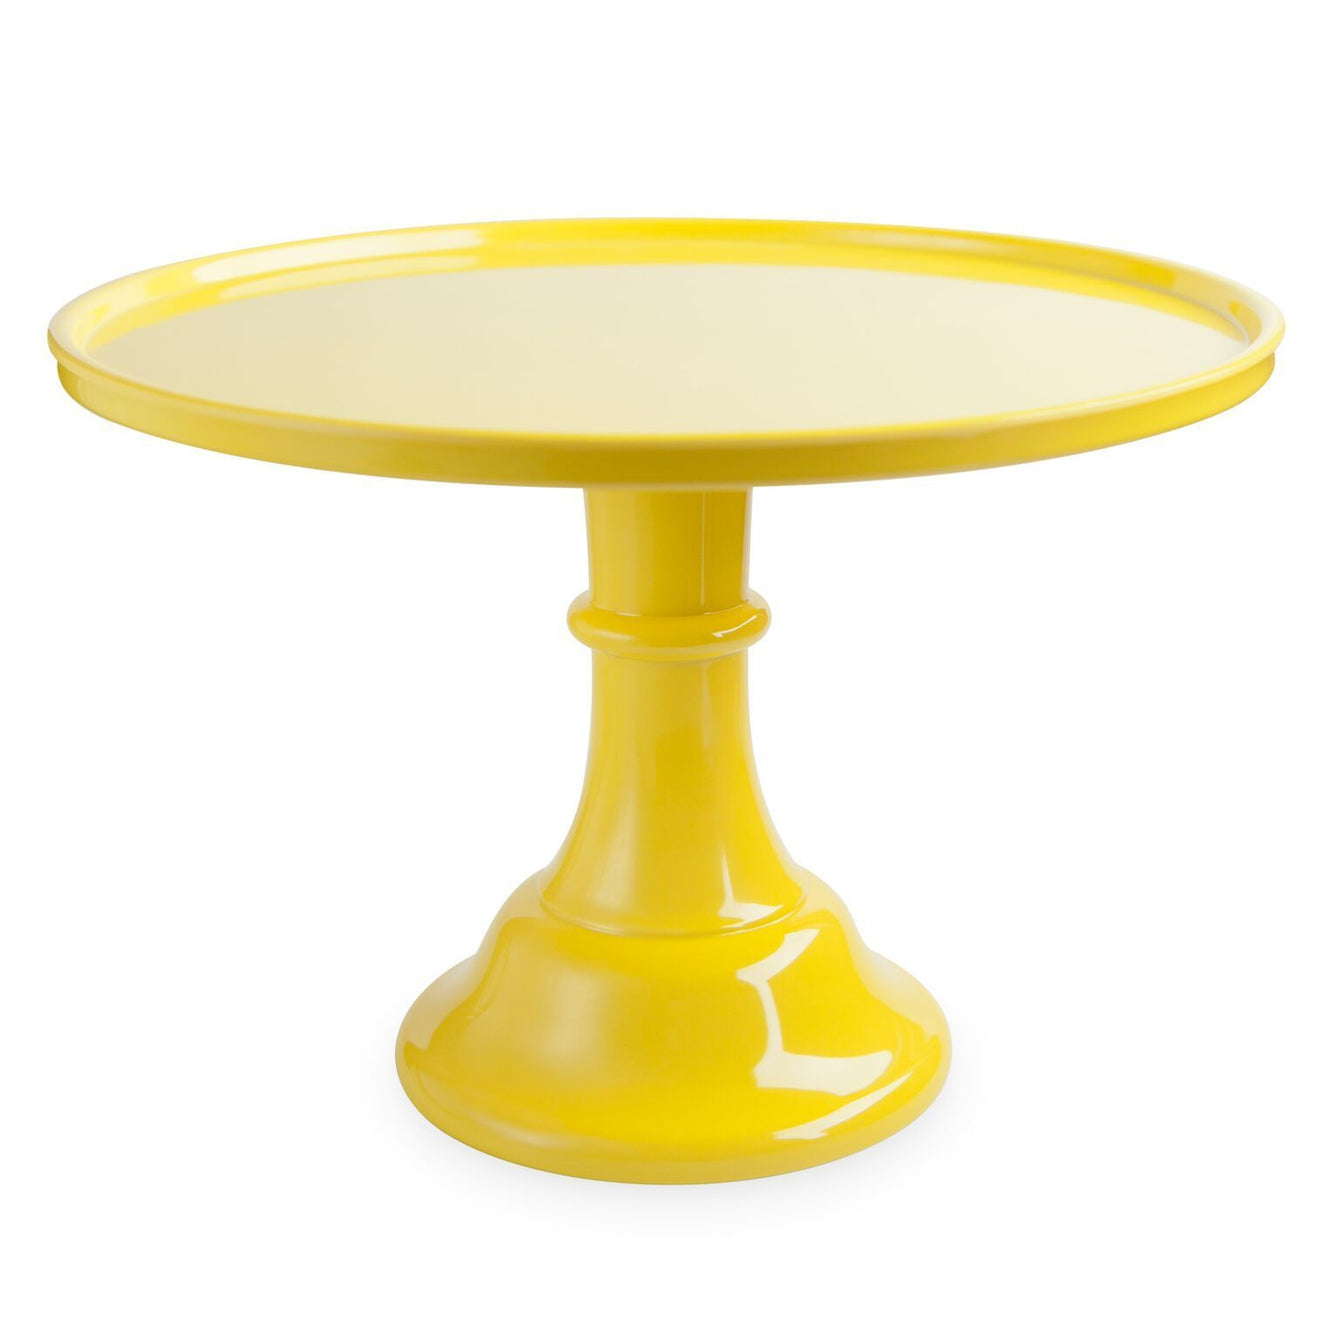 Melamine Cake Stand-Home - Party Supplies - Treat Decoration-CAKEWALK-Yellow-Peccadilly